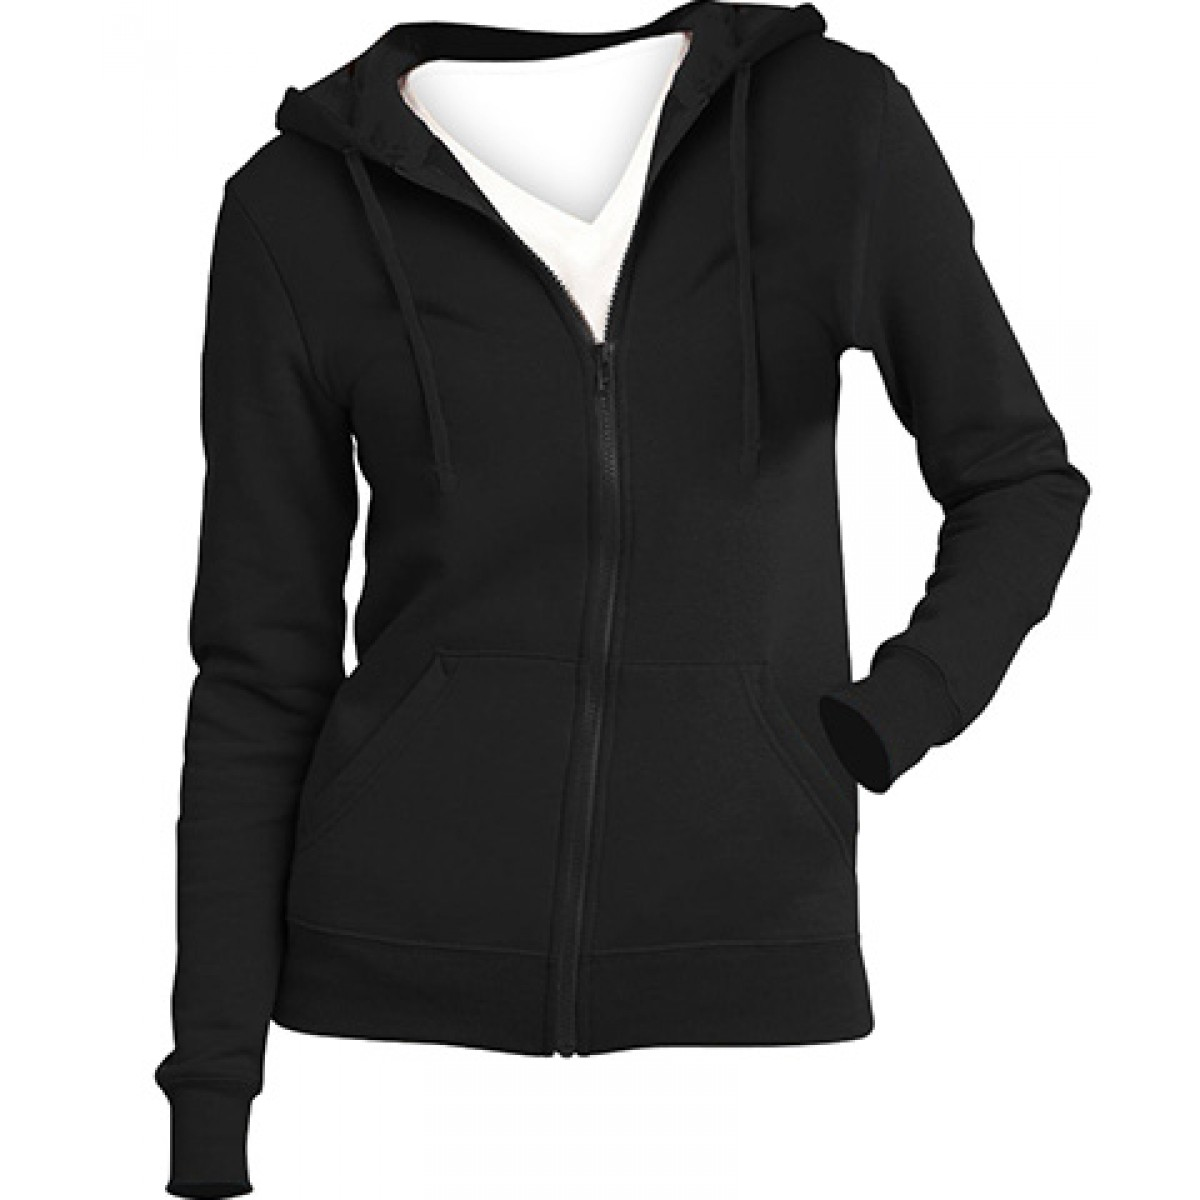 Juniors Full-Zip Hoodie-Black-XL